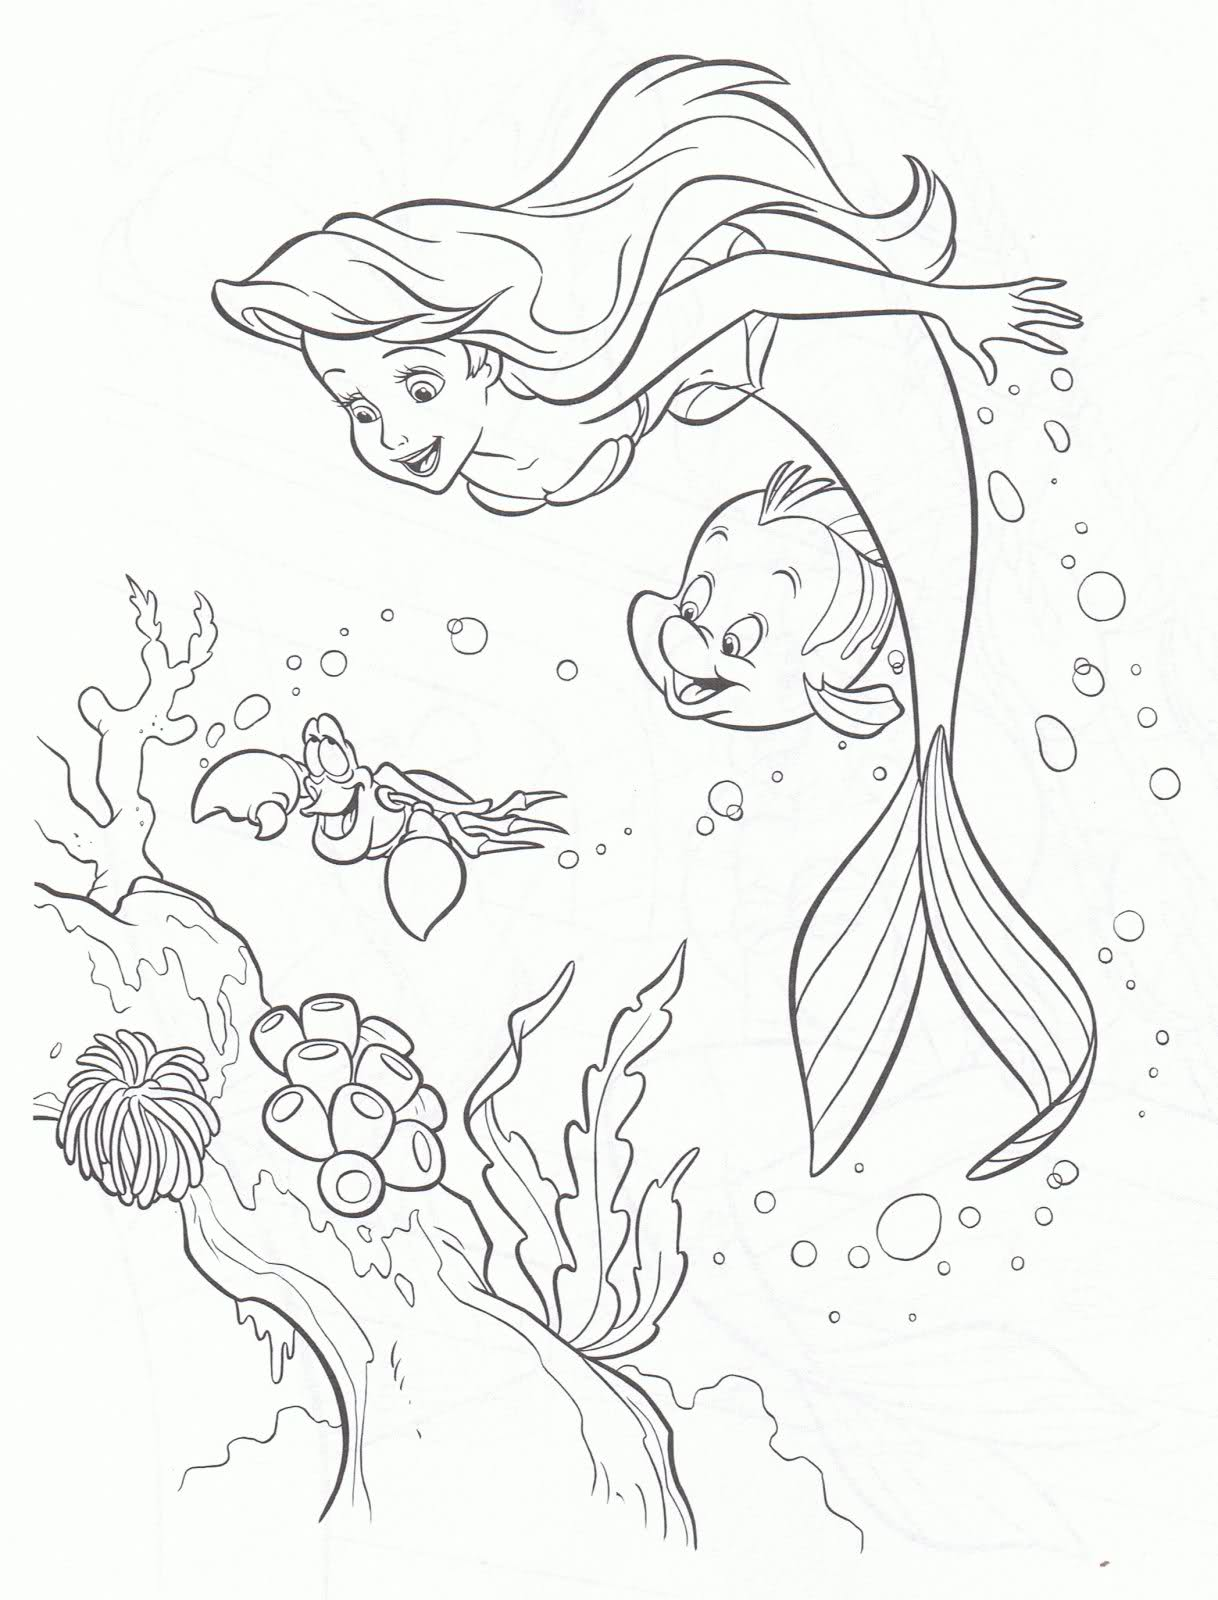 Barbie In A Mermaid Tale Coloring Pages  Barbie Mermaid Coloring Pages